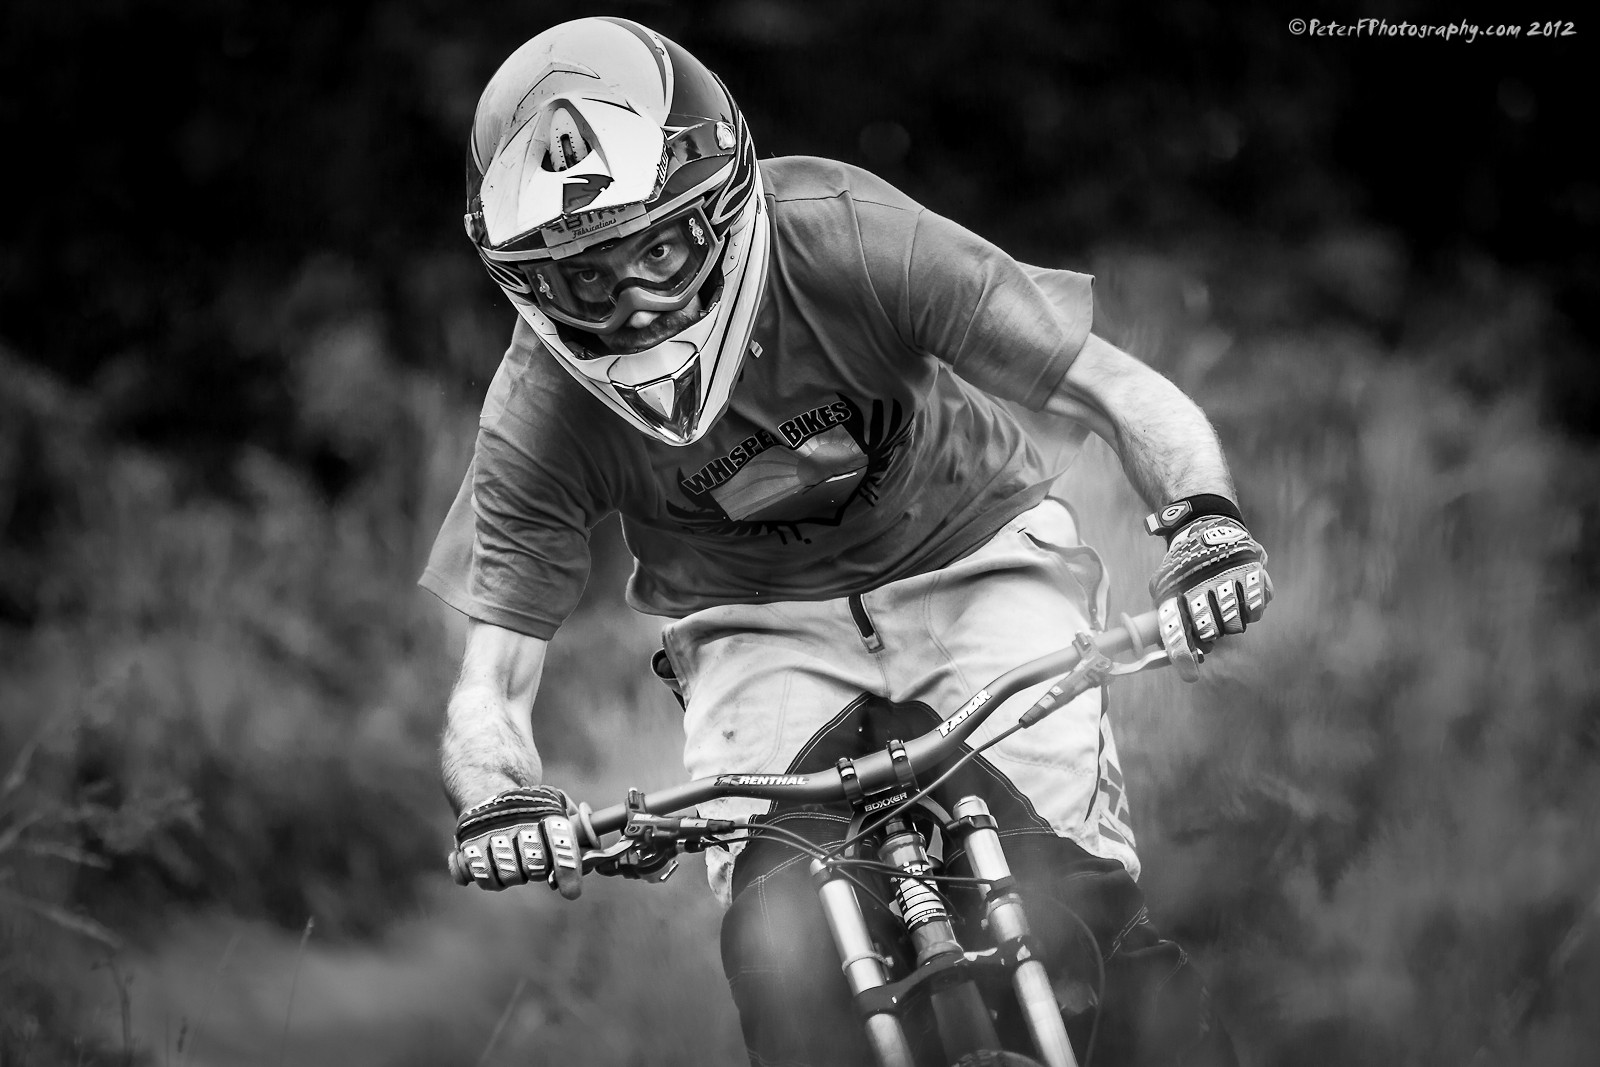 paul burford  - PeterFPhotography - Mountain Biking Pictures - Vital MTB